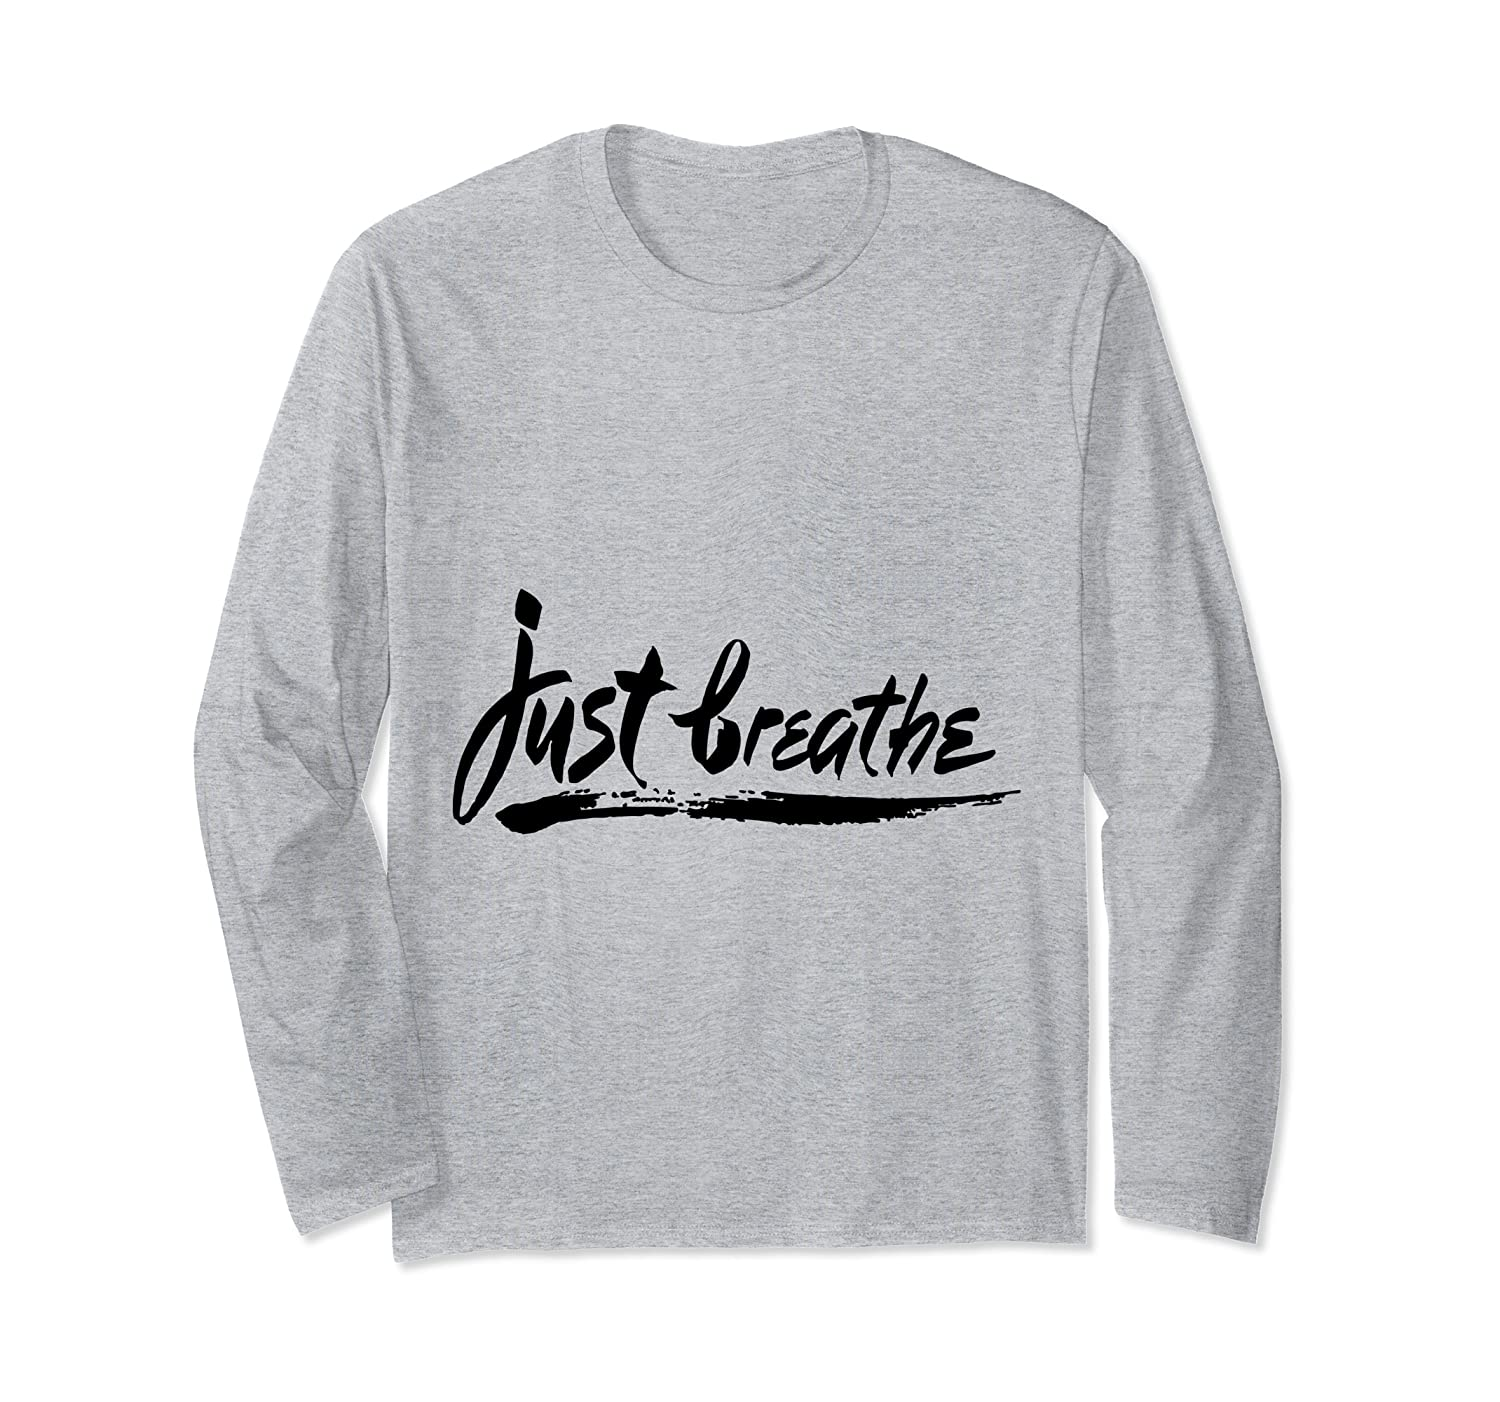 'Just Breathe' PTSD Mental Health Shirt Long Sleeve T-Shirt-ANZ